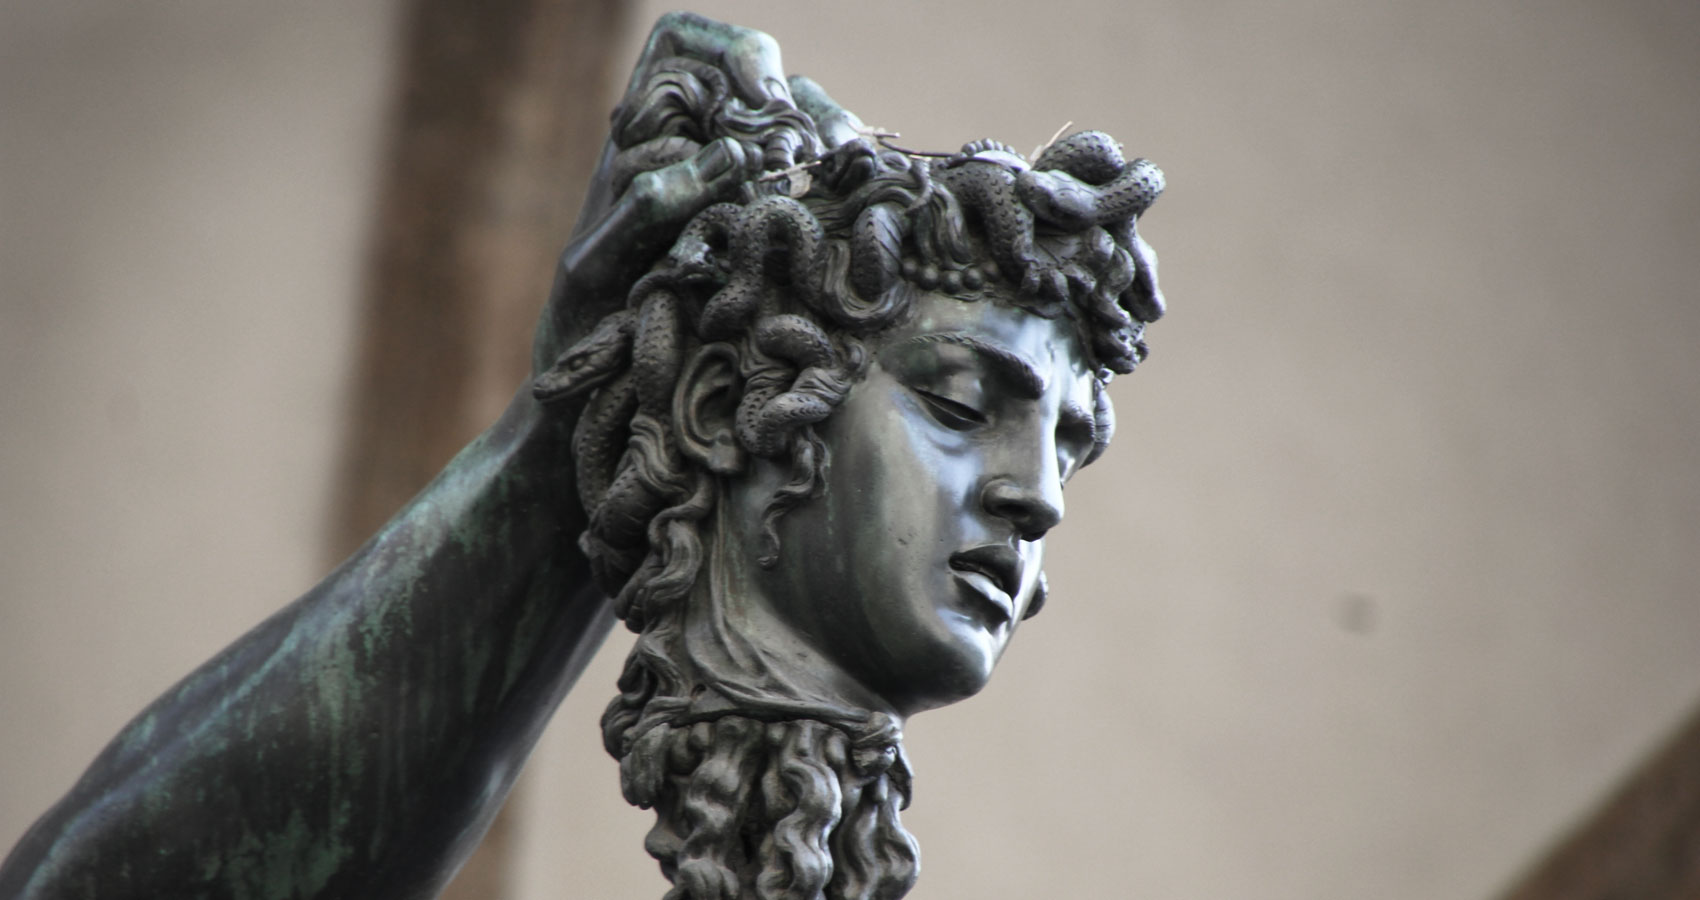 Medusa, poetry written by Tammy M Darby at Spillwords.com